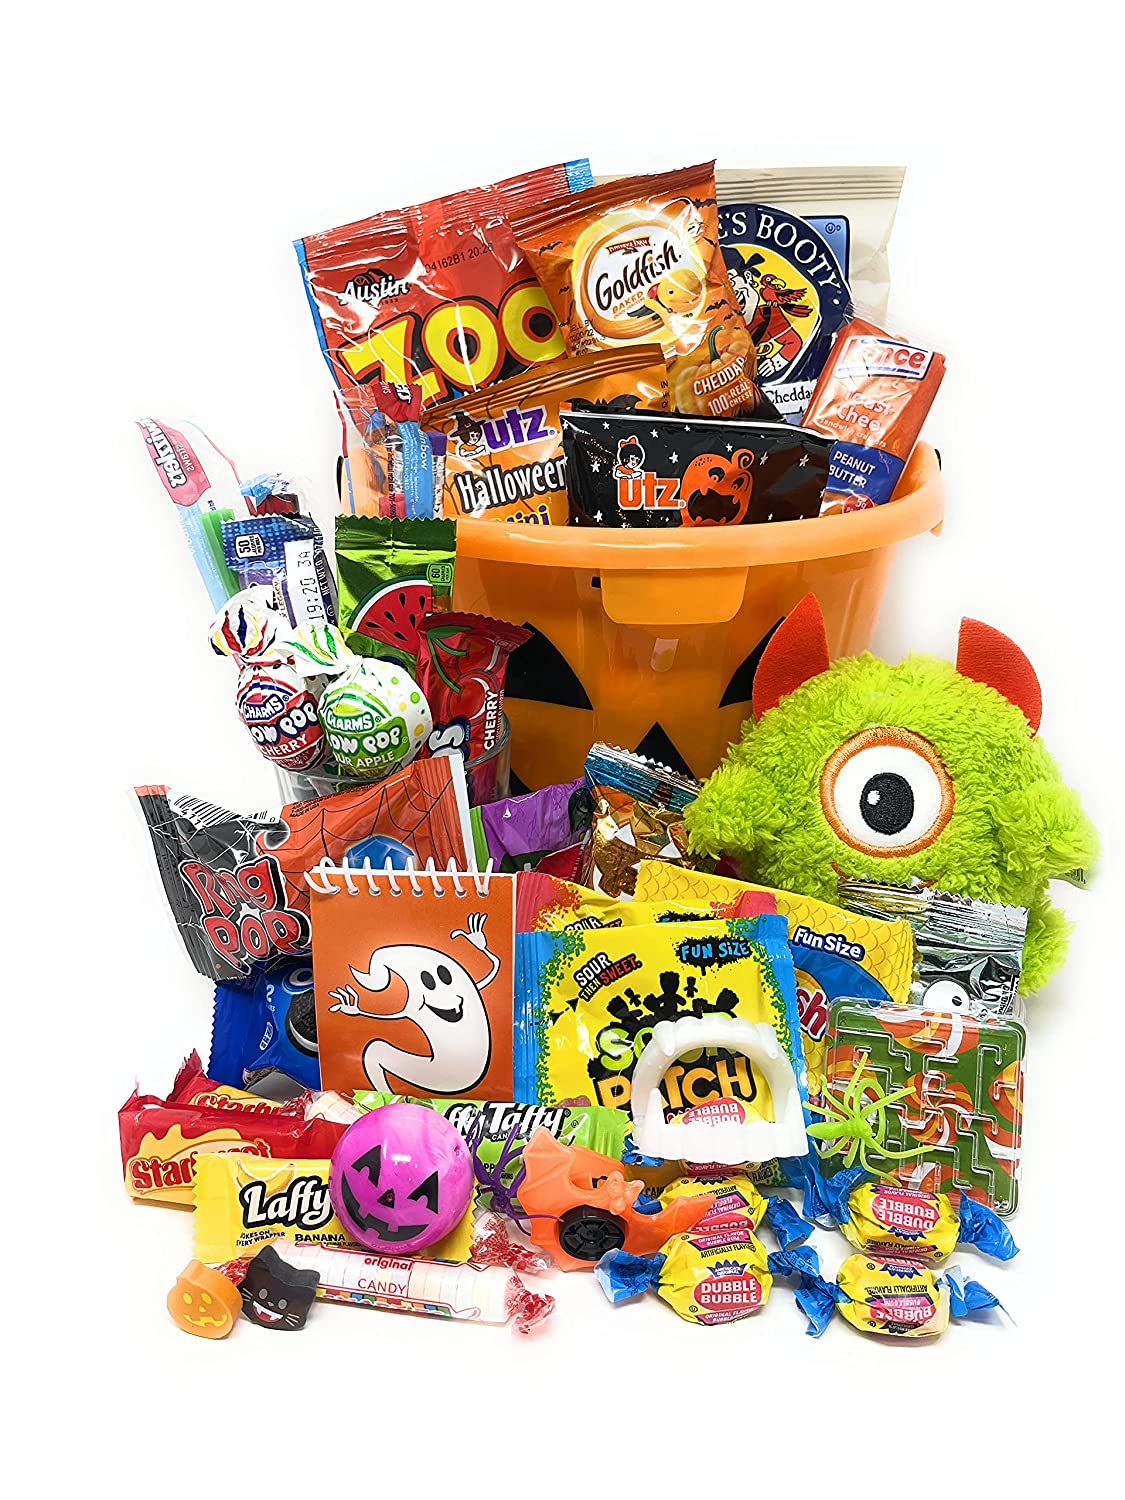 Halloween Candy Trick or Treat Pumpkin Bucket - Already Filled 50 Pieces Snacks Cookies Candy Gift Pack Care Package Assortment Basket Bundle for Children Kids Boys Girls College Students